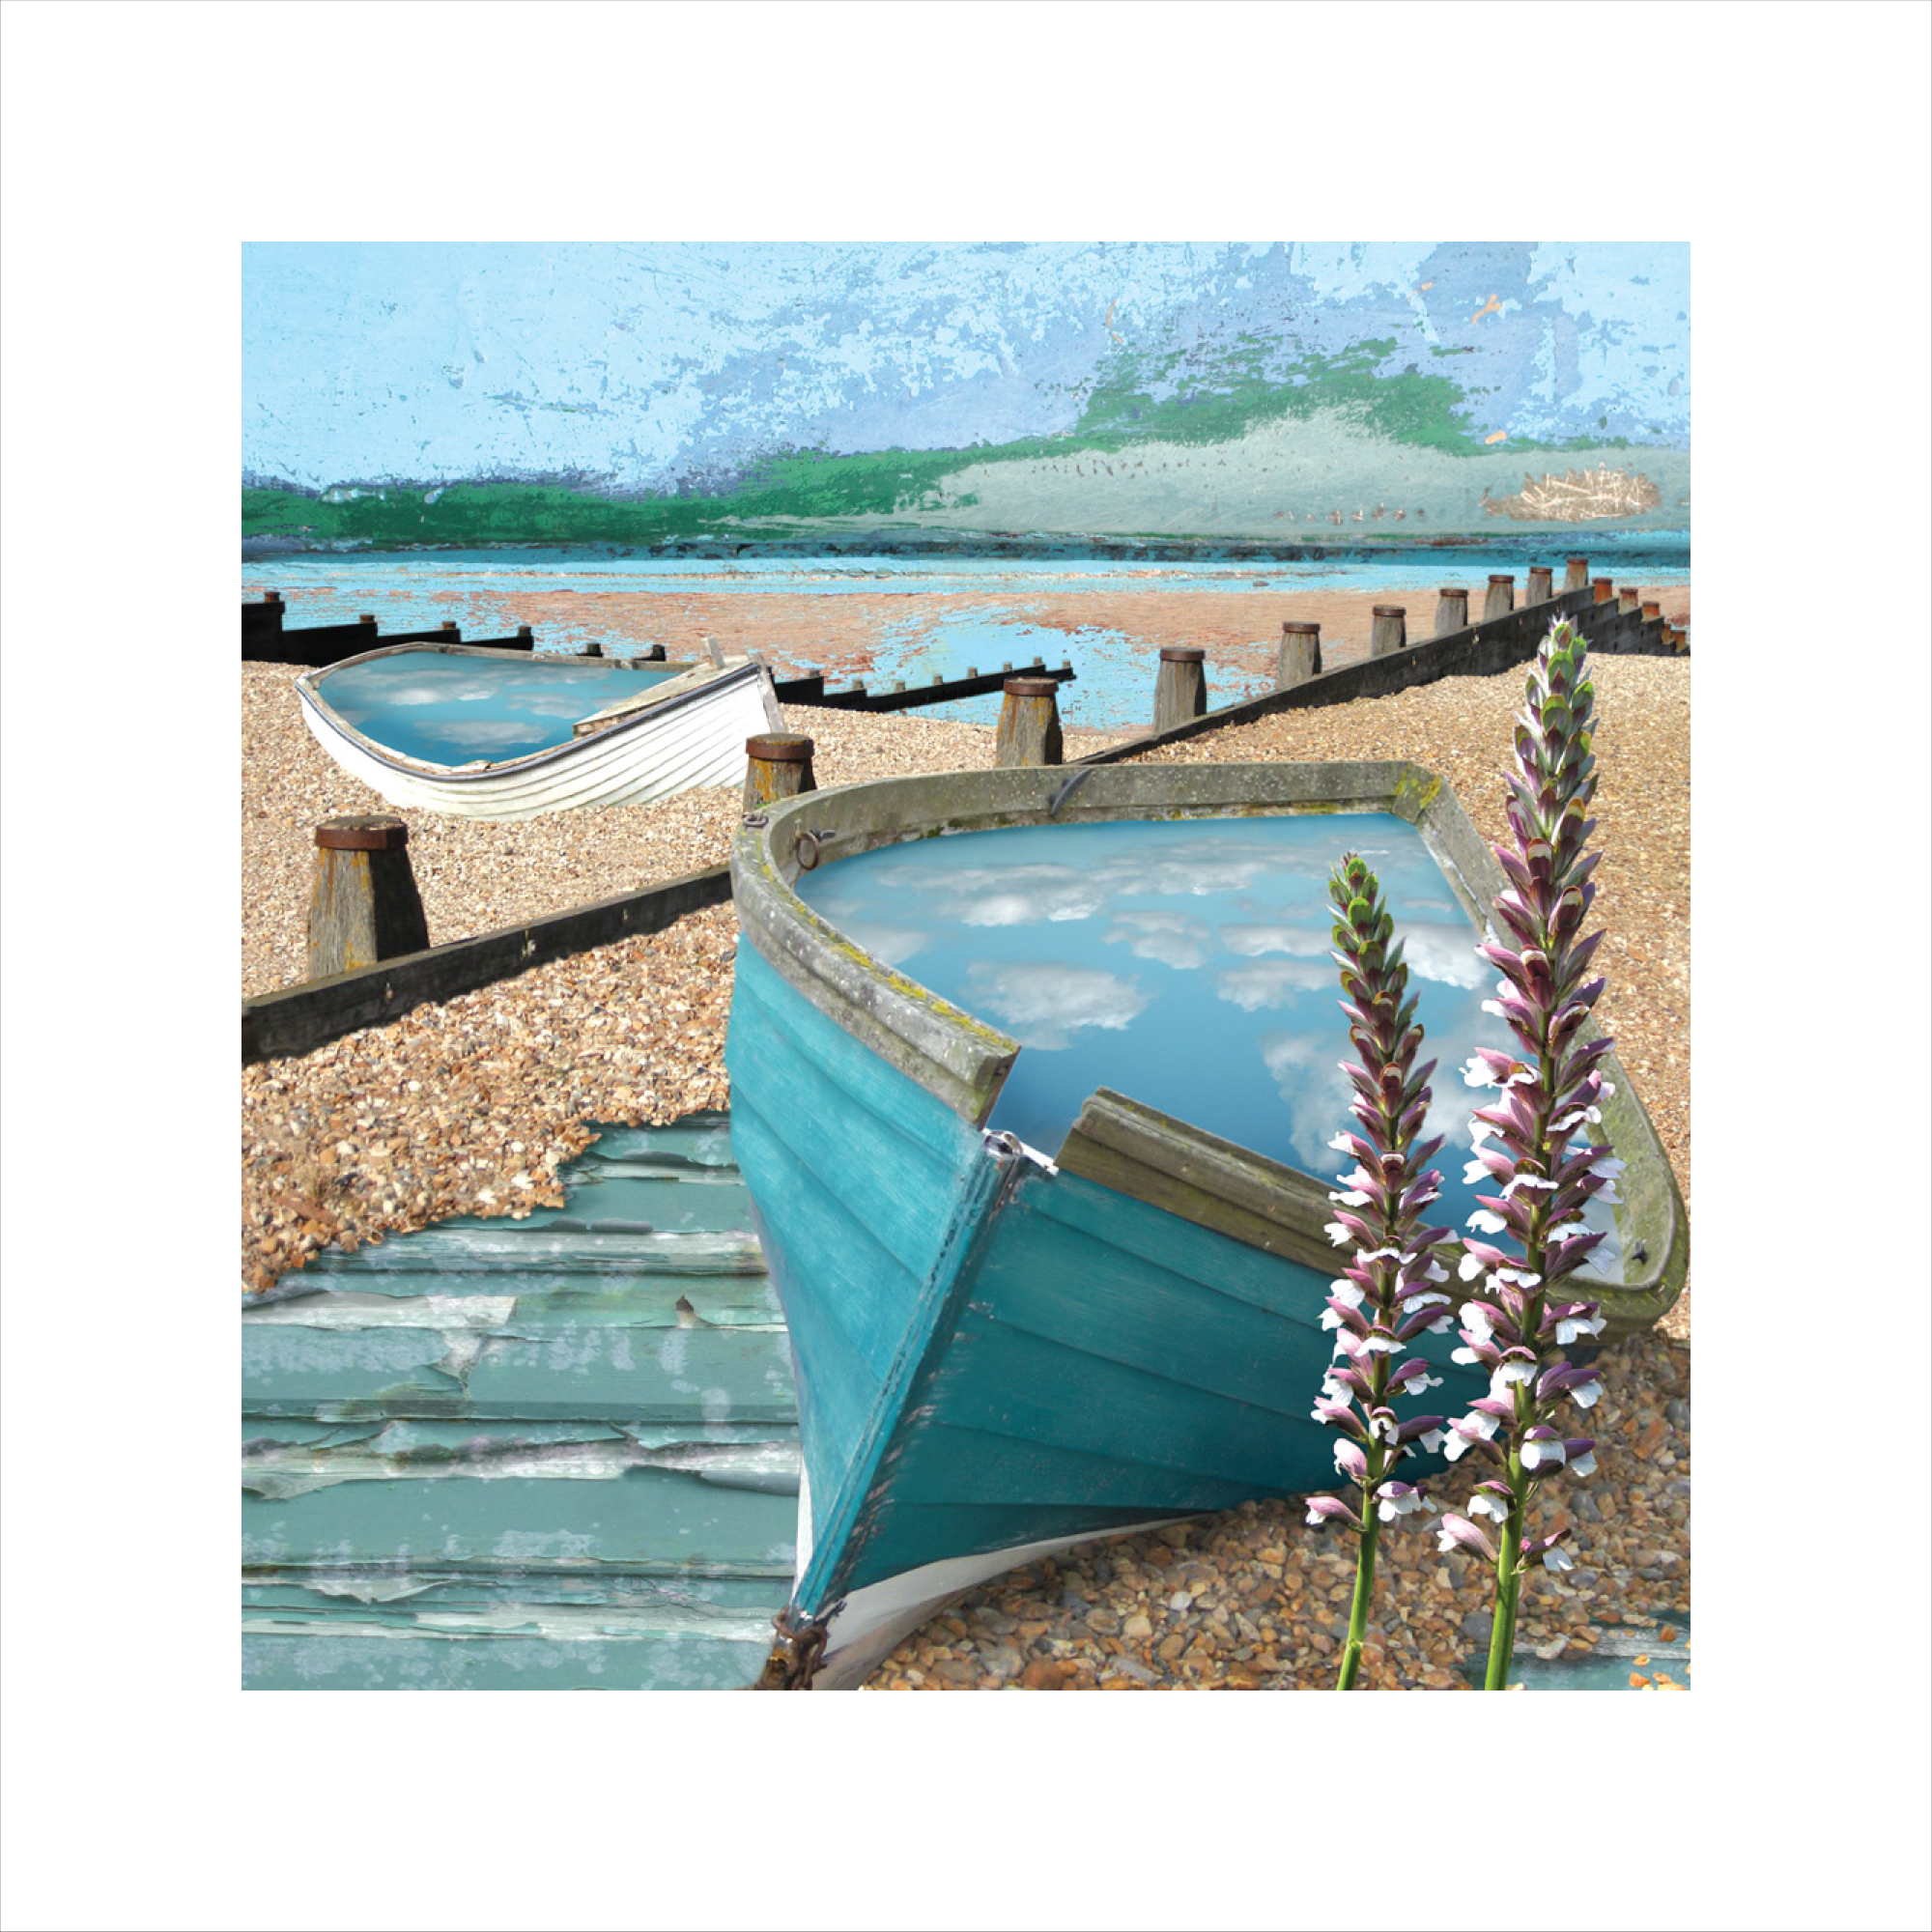 Claire Gill, Limited edition prints, digital photomontage, fine art prints, hahnemuhle, coastal art, Collect Art, seascape 9, Acanthus, Whitstable, Groins